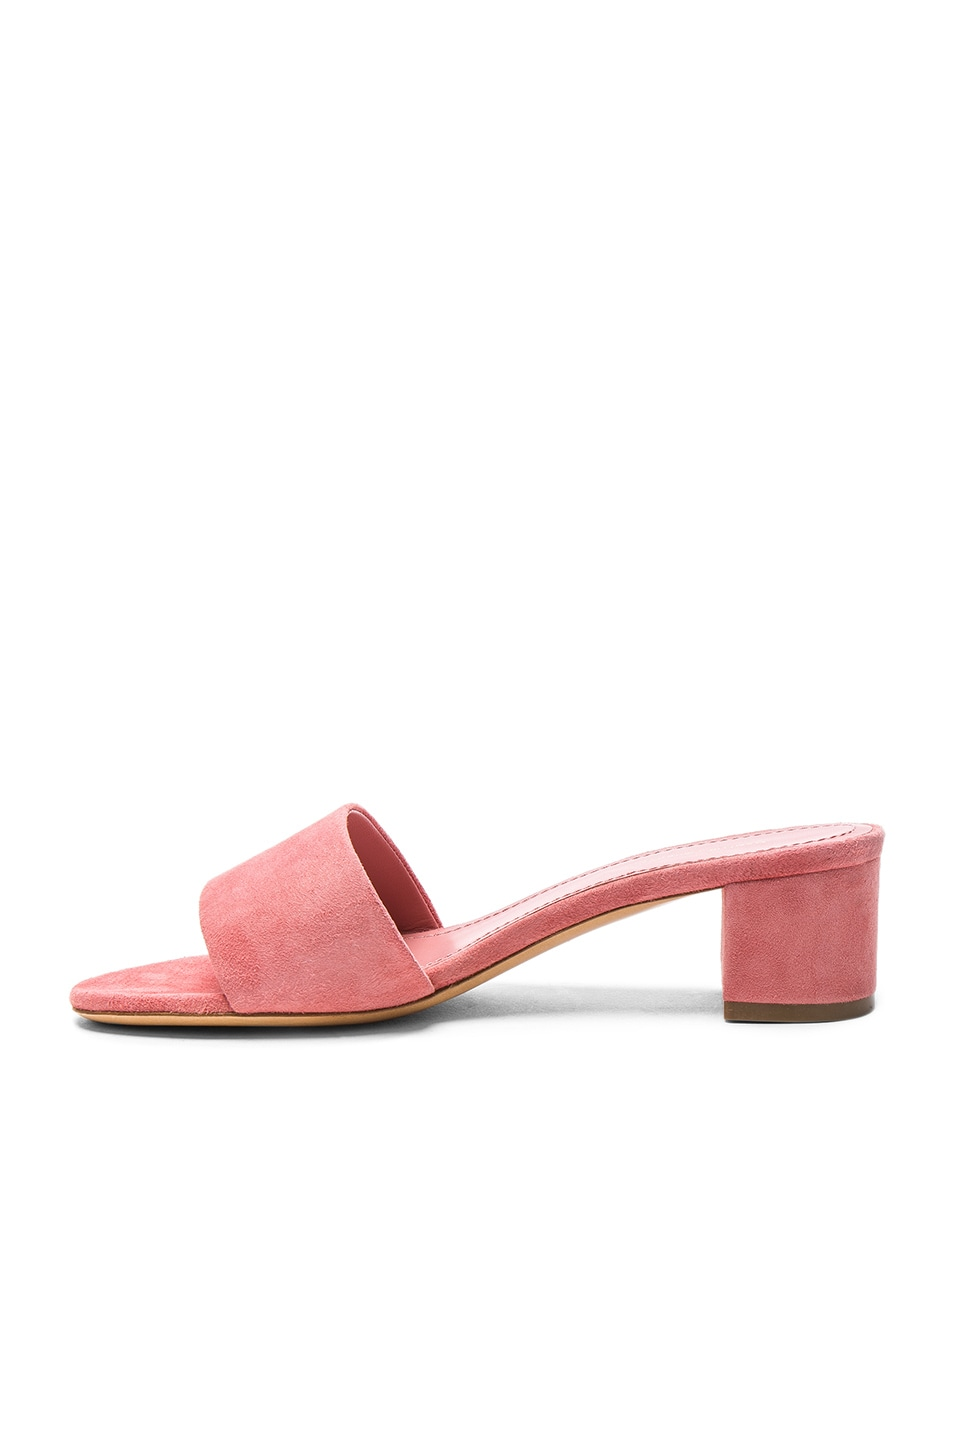 Image 5 of Mansur Gavriel Suede Single Strap Heels in Blush Suede